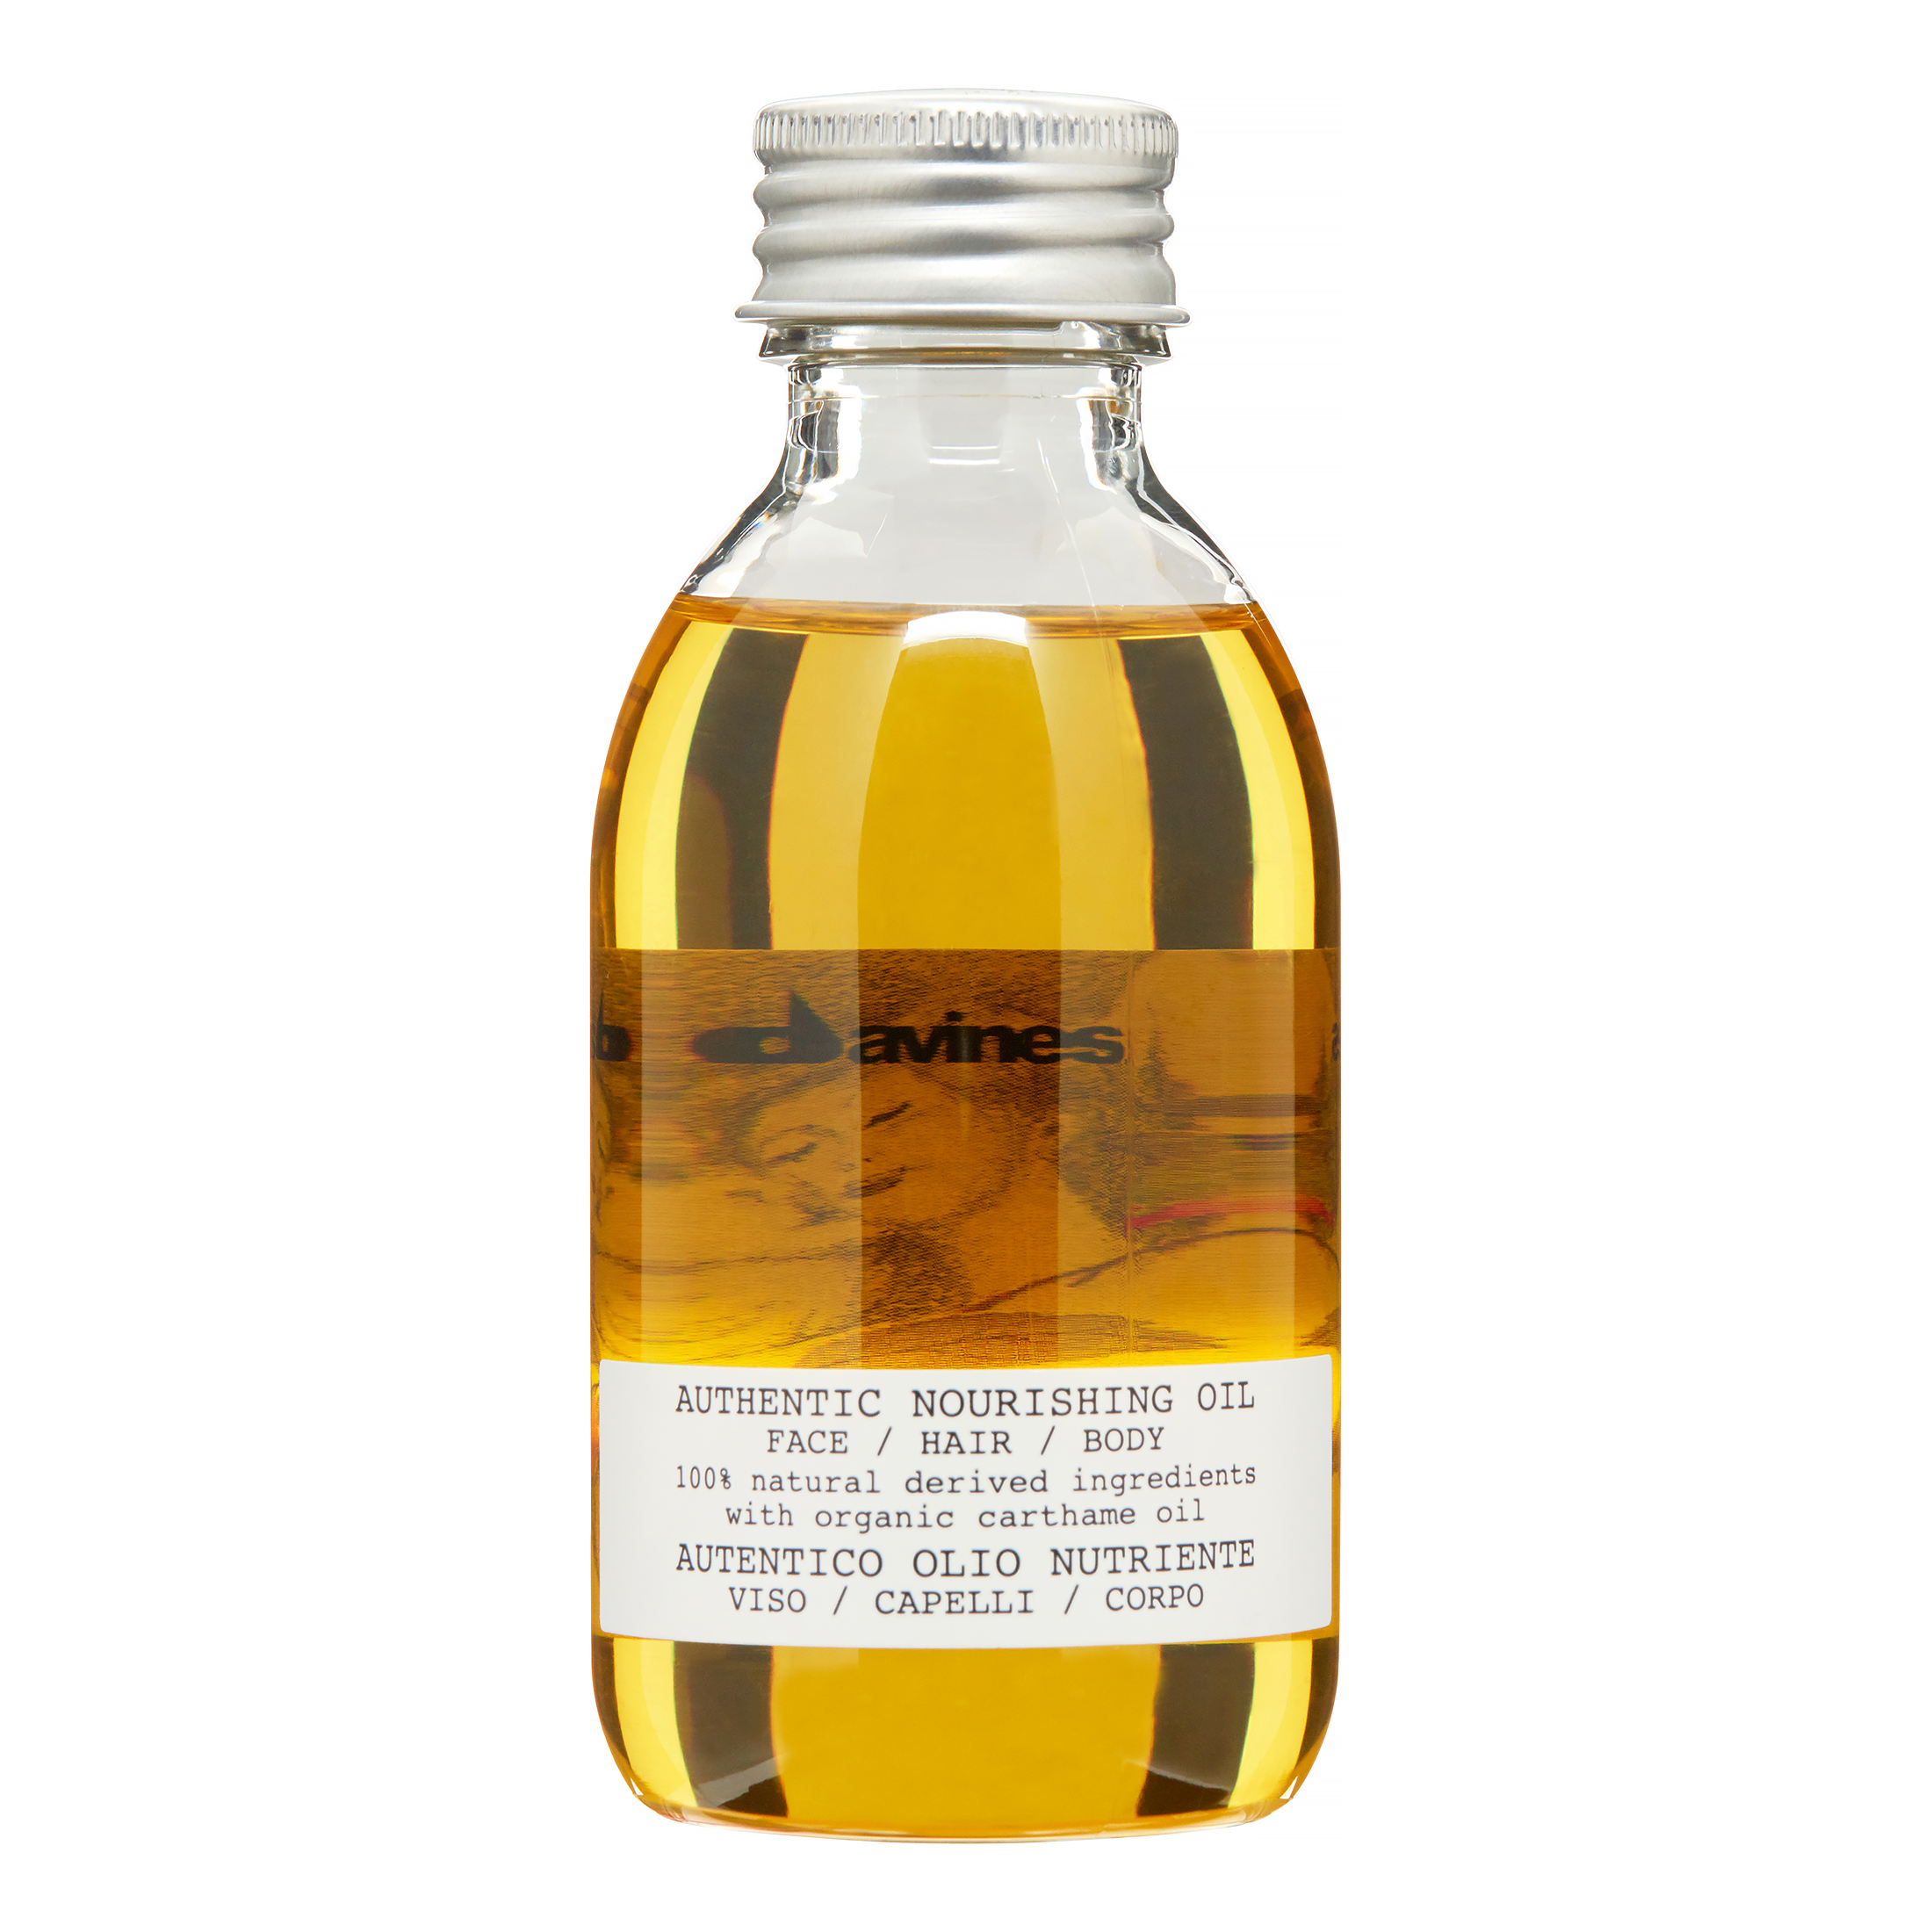 Davines Aunthentic Nourishing Oil, 4.73 Oz